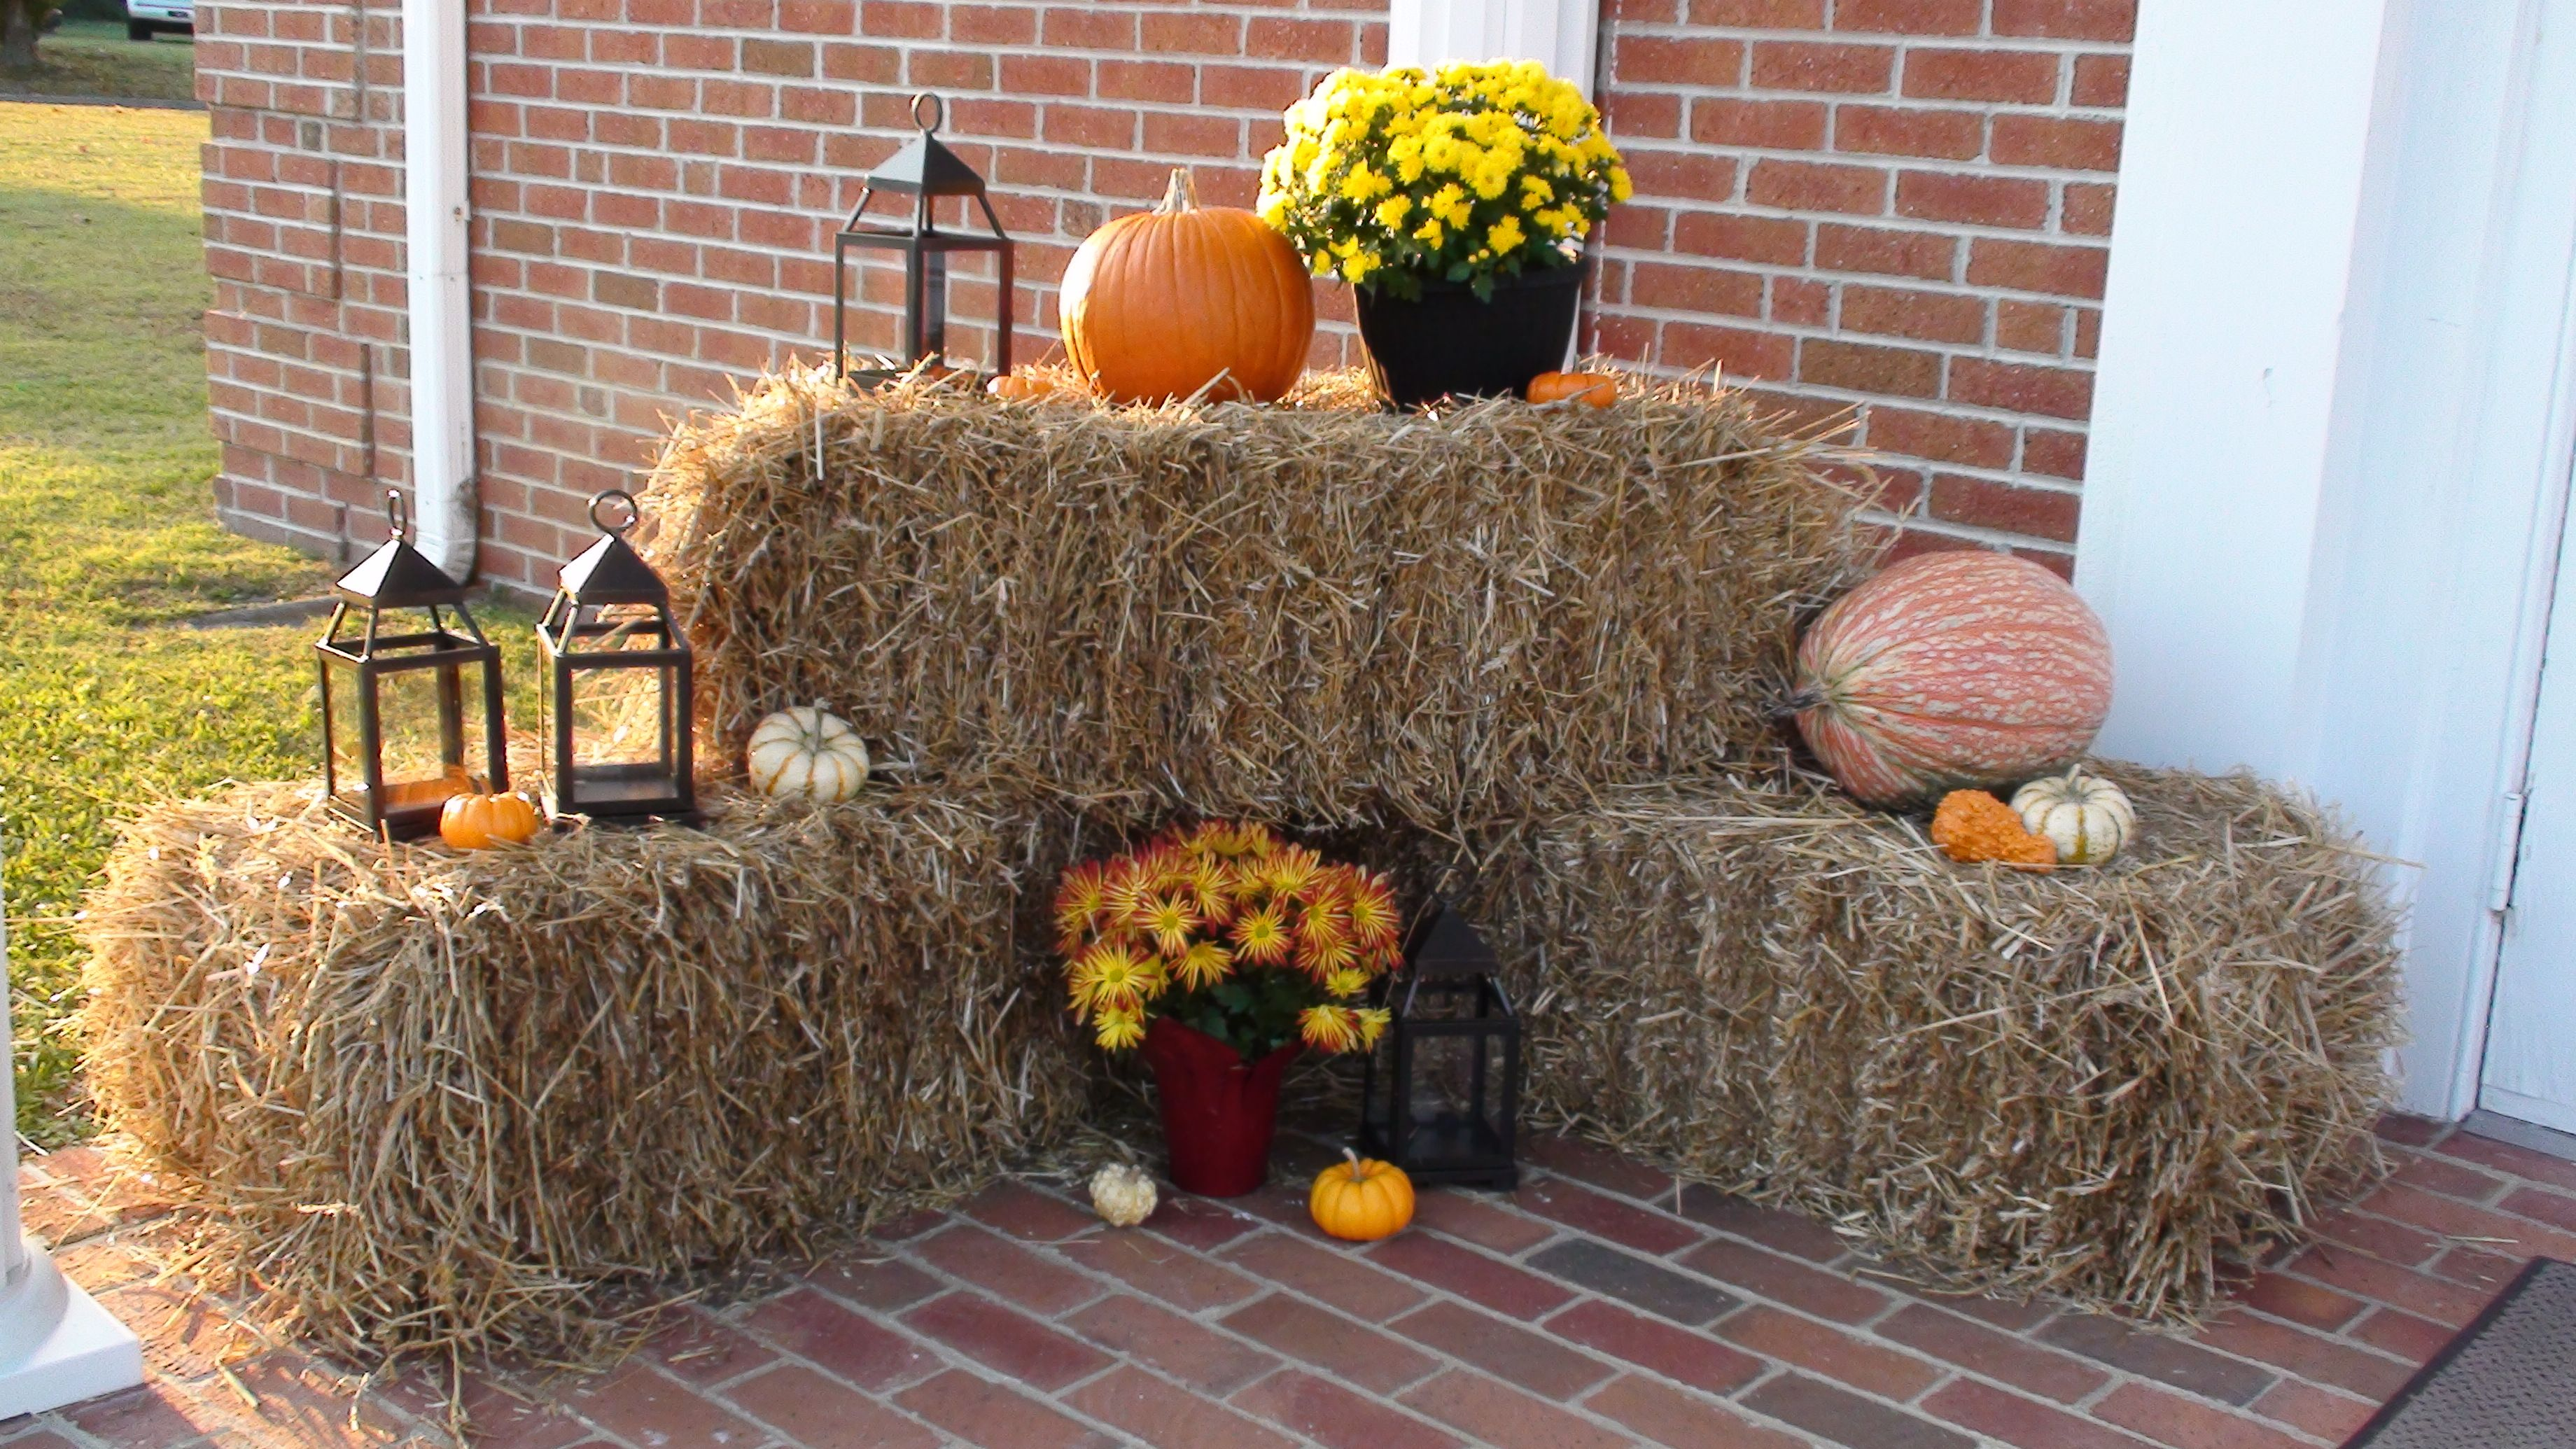 My friend Jamie s decoration outside of the church for her Fall